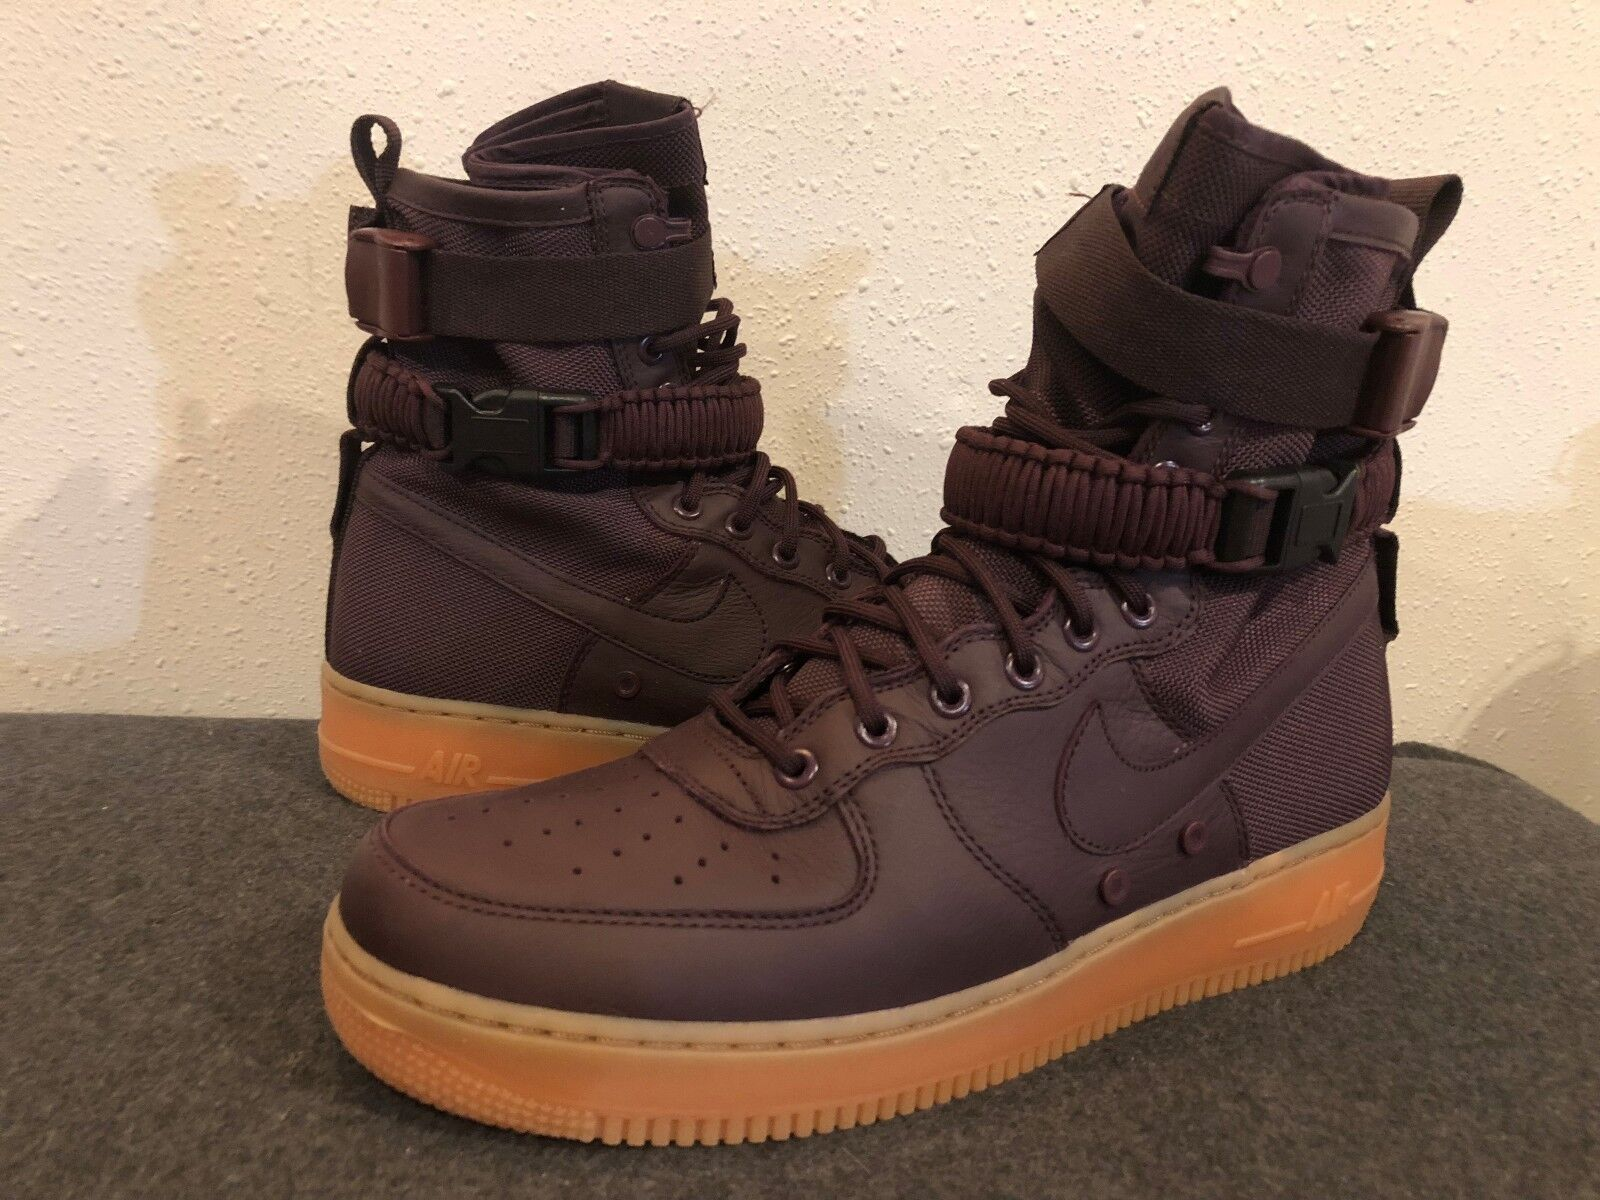 Nike Air Force Force Force 1 SF High Sz 11.5  864024-600 Burgundy Special Field Ltd NSW DS 62b0a2